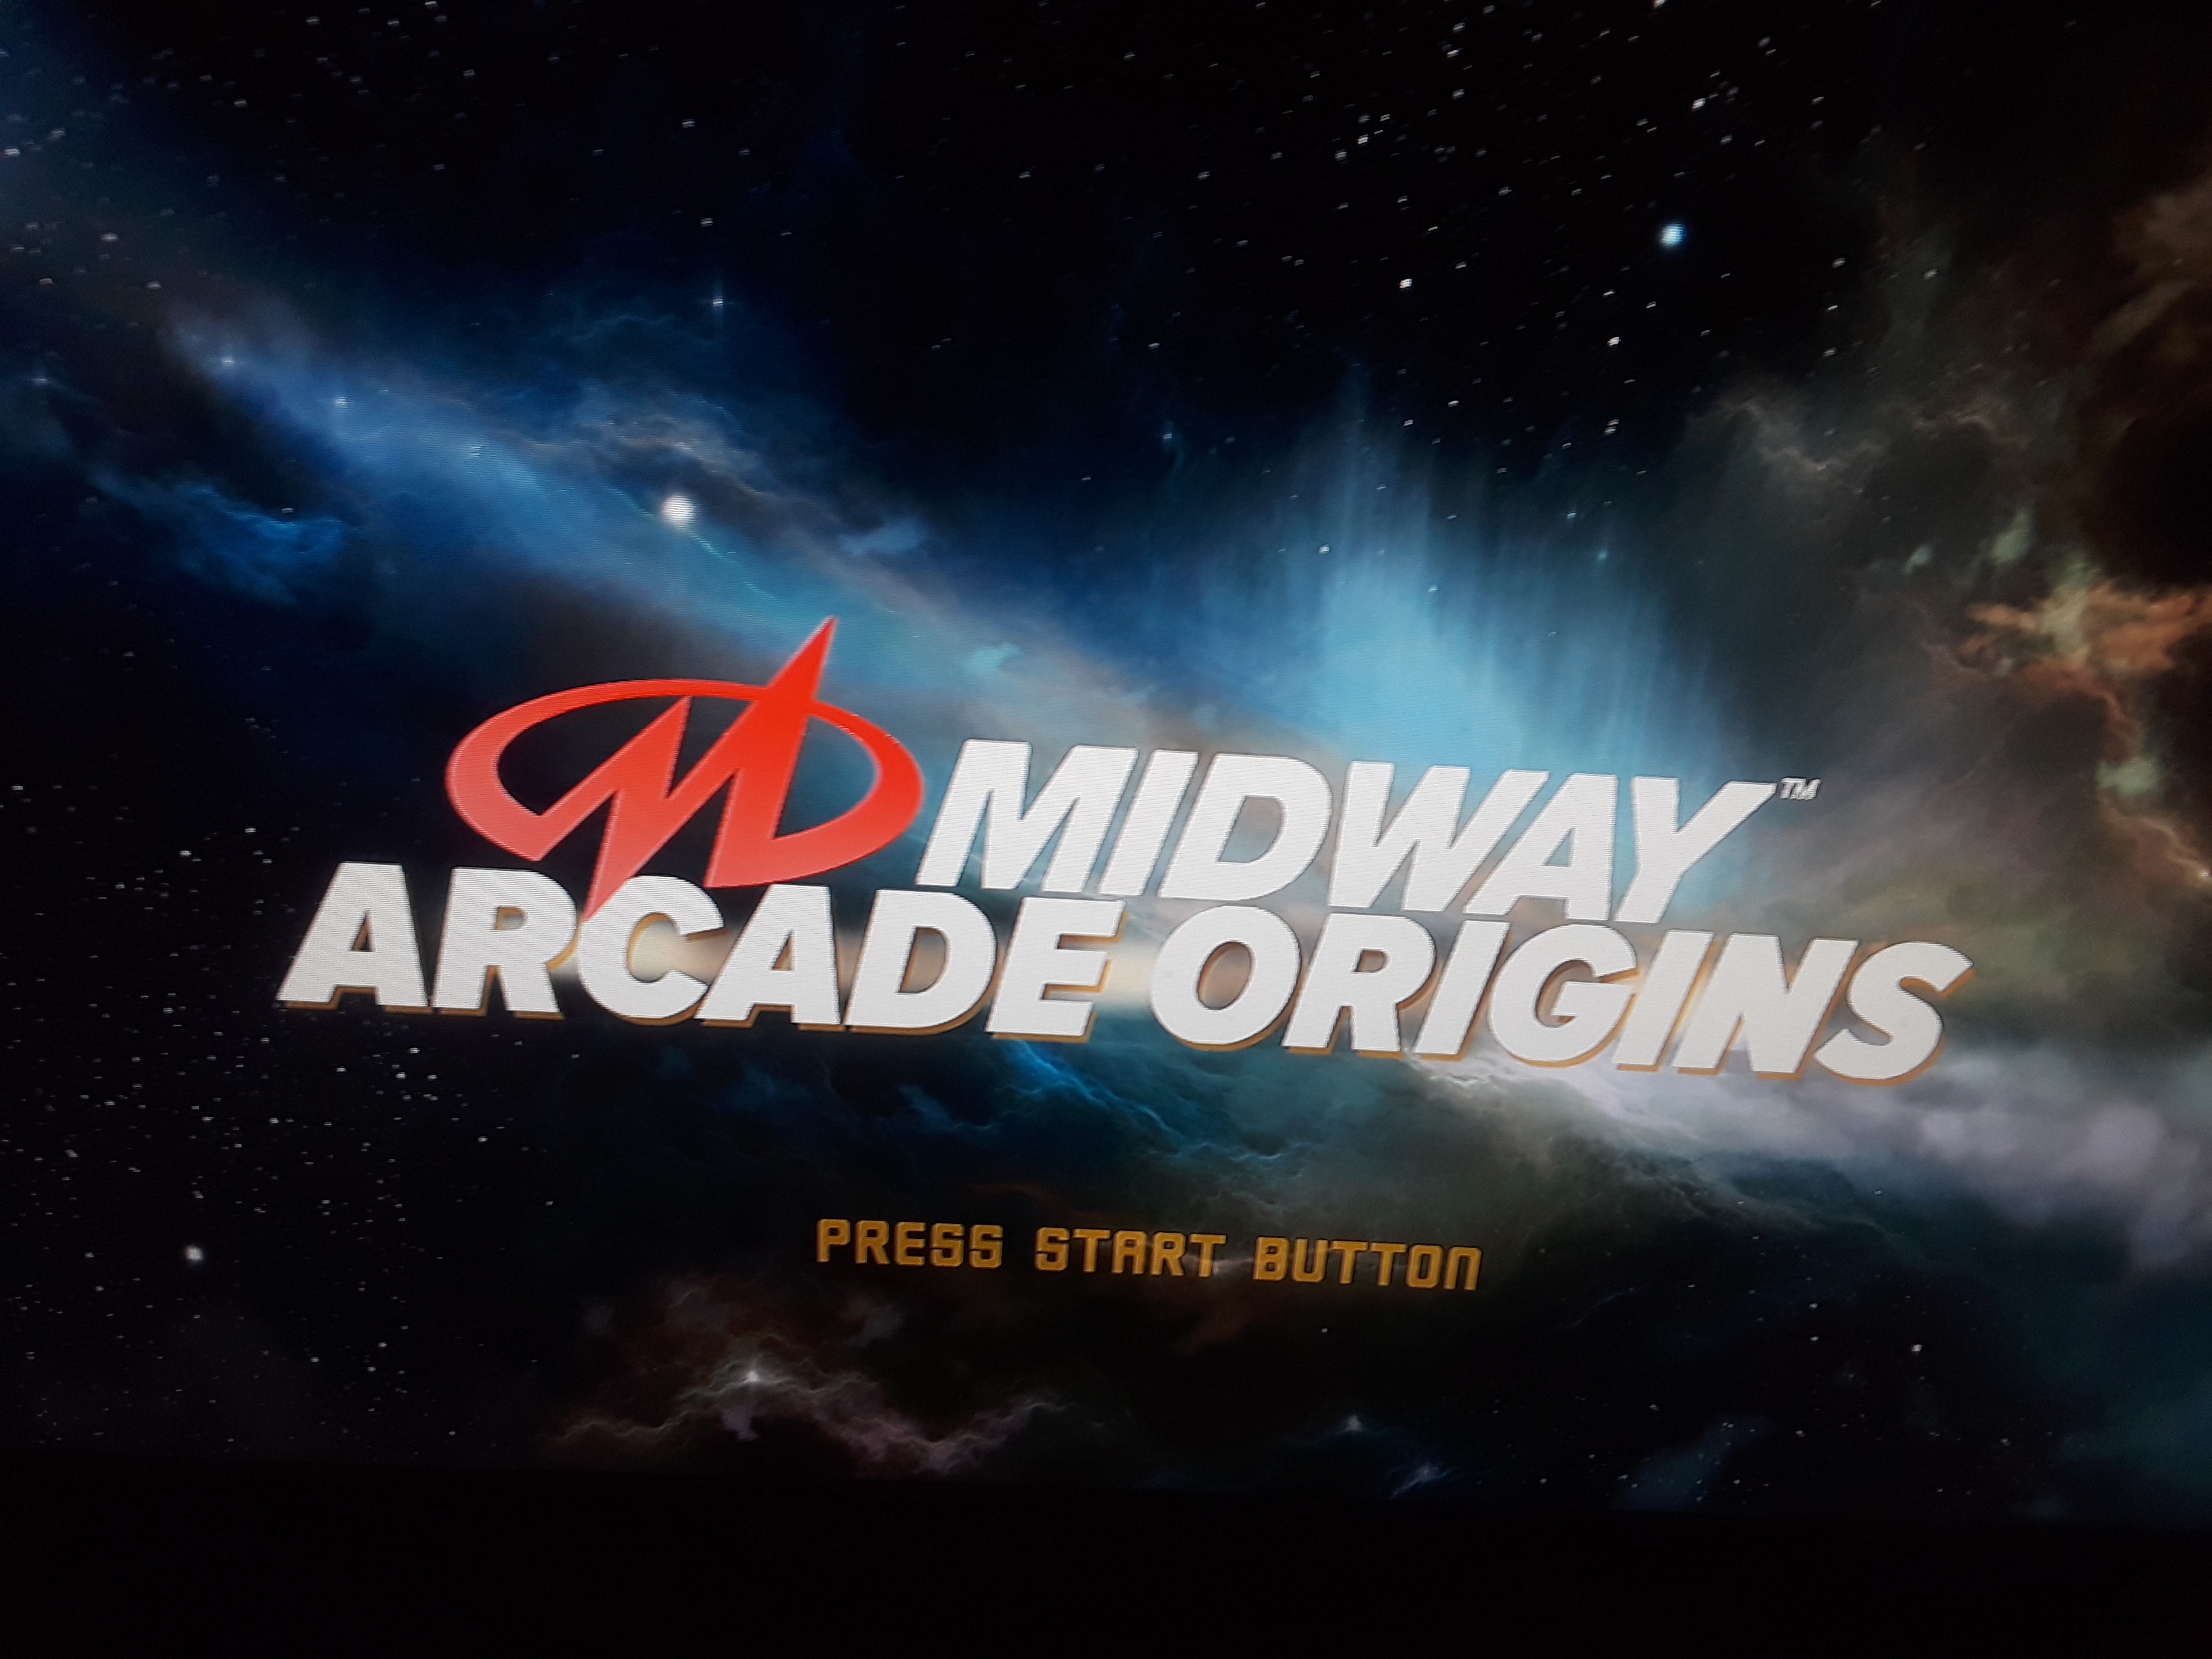 JML101582: Midway Arcade Origins: Total Carnage (Playstation 3) 43,197 points on 2018-05-07 22:59:49